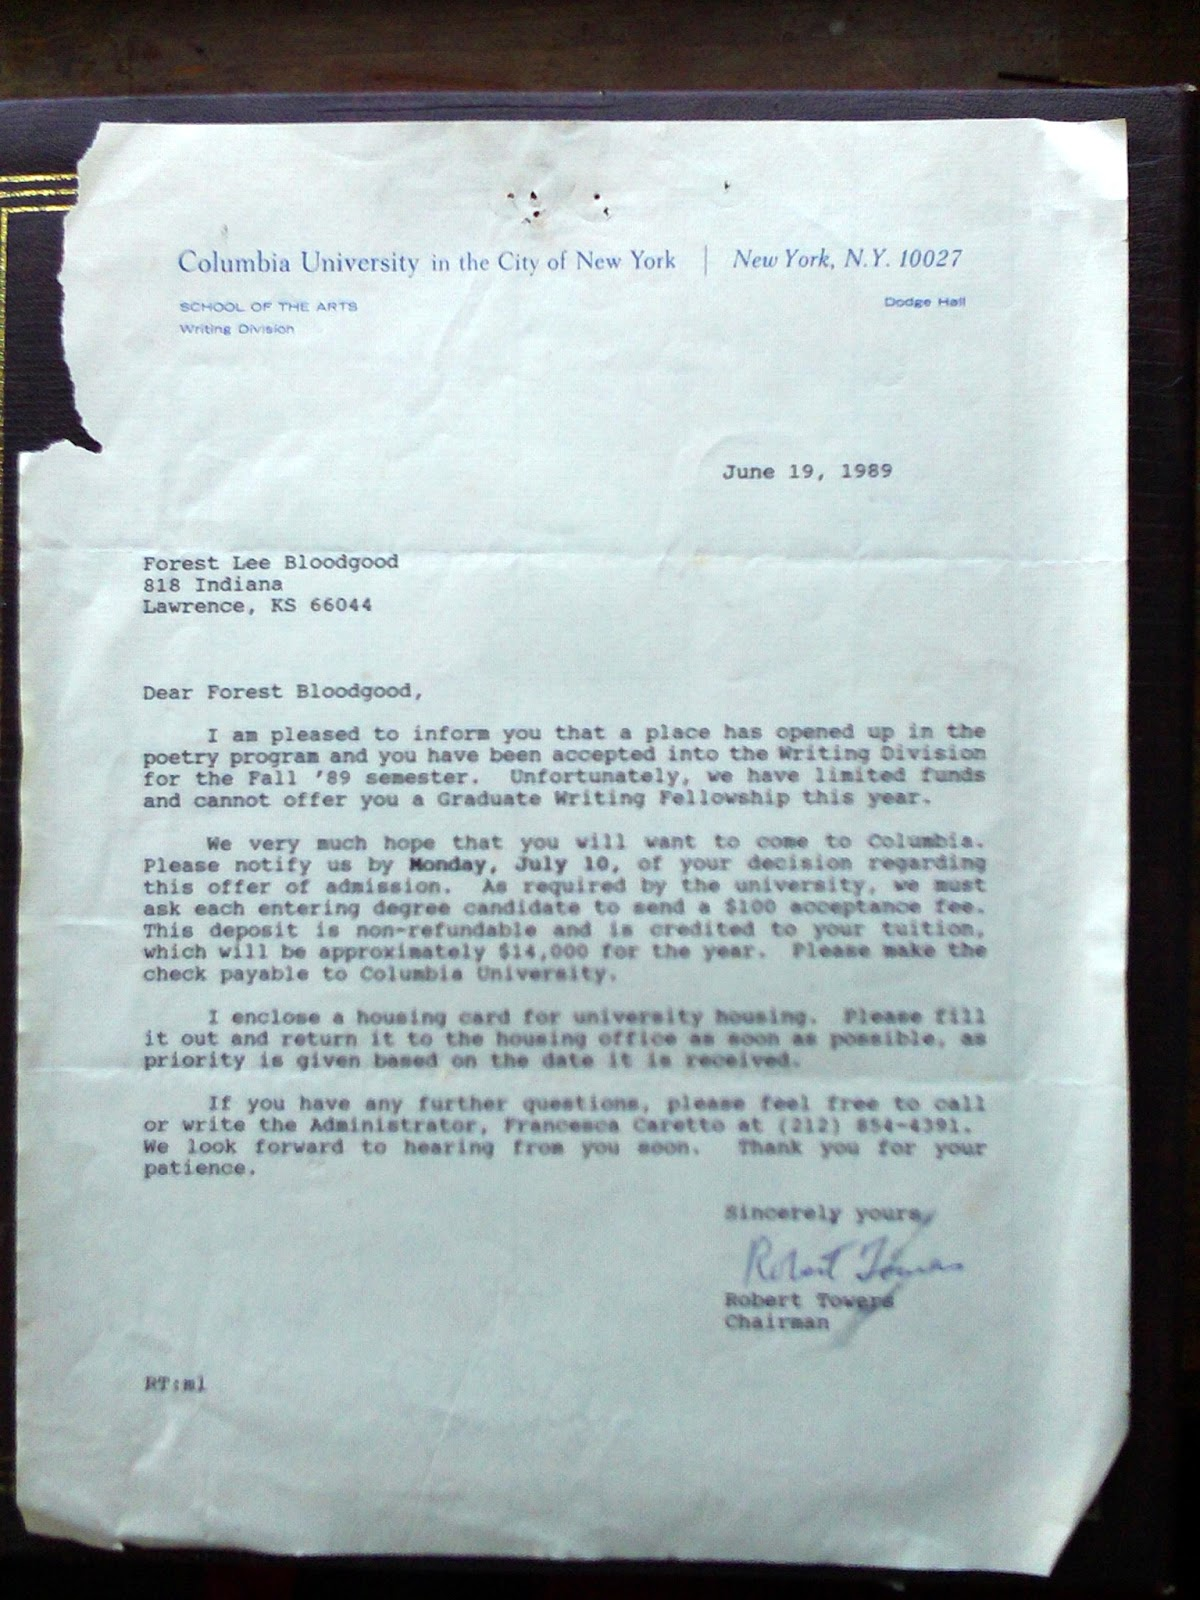 poetry of forest bloodgood: acceptance letter from Columbia